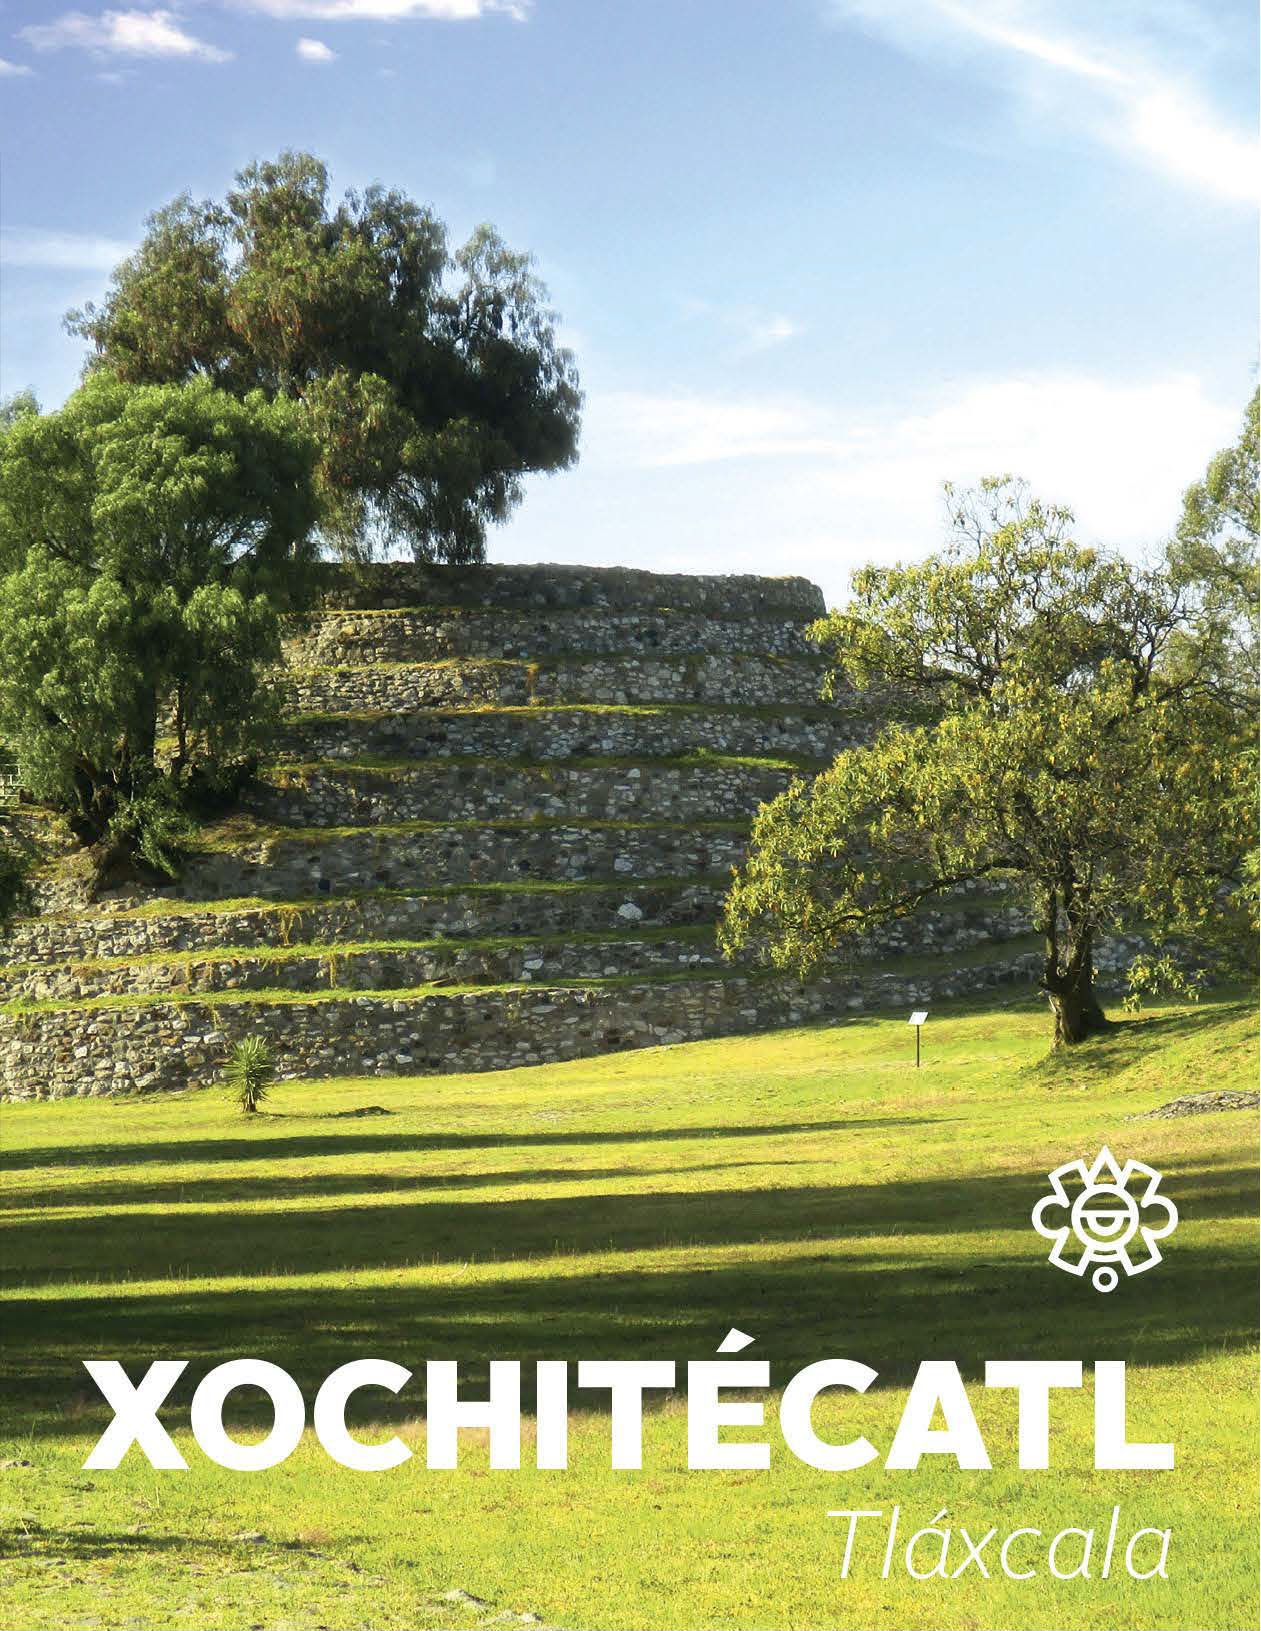 Xochitécatl